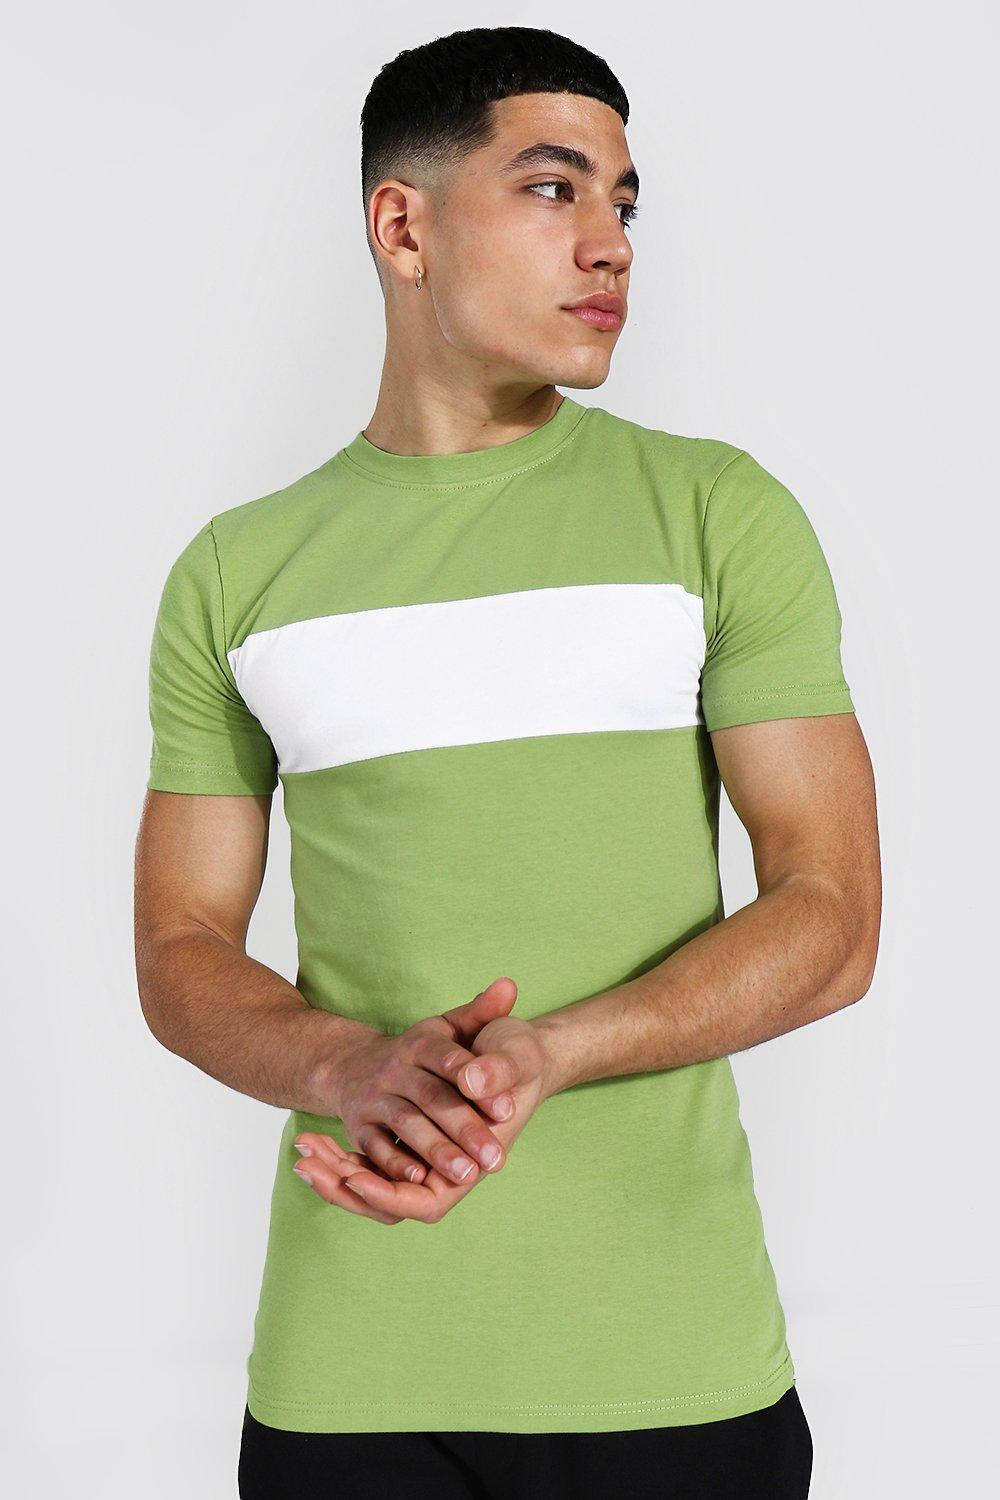 1960s Mens Shirts | 60s Mod Shirts, Hippie Shirts Mens Muscle Fit Longline Colour Block T-shirt - Green $10.80 AT vintagedancer.com